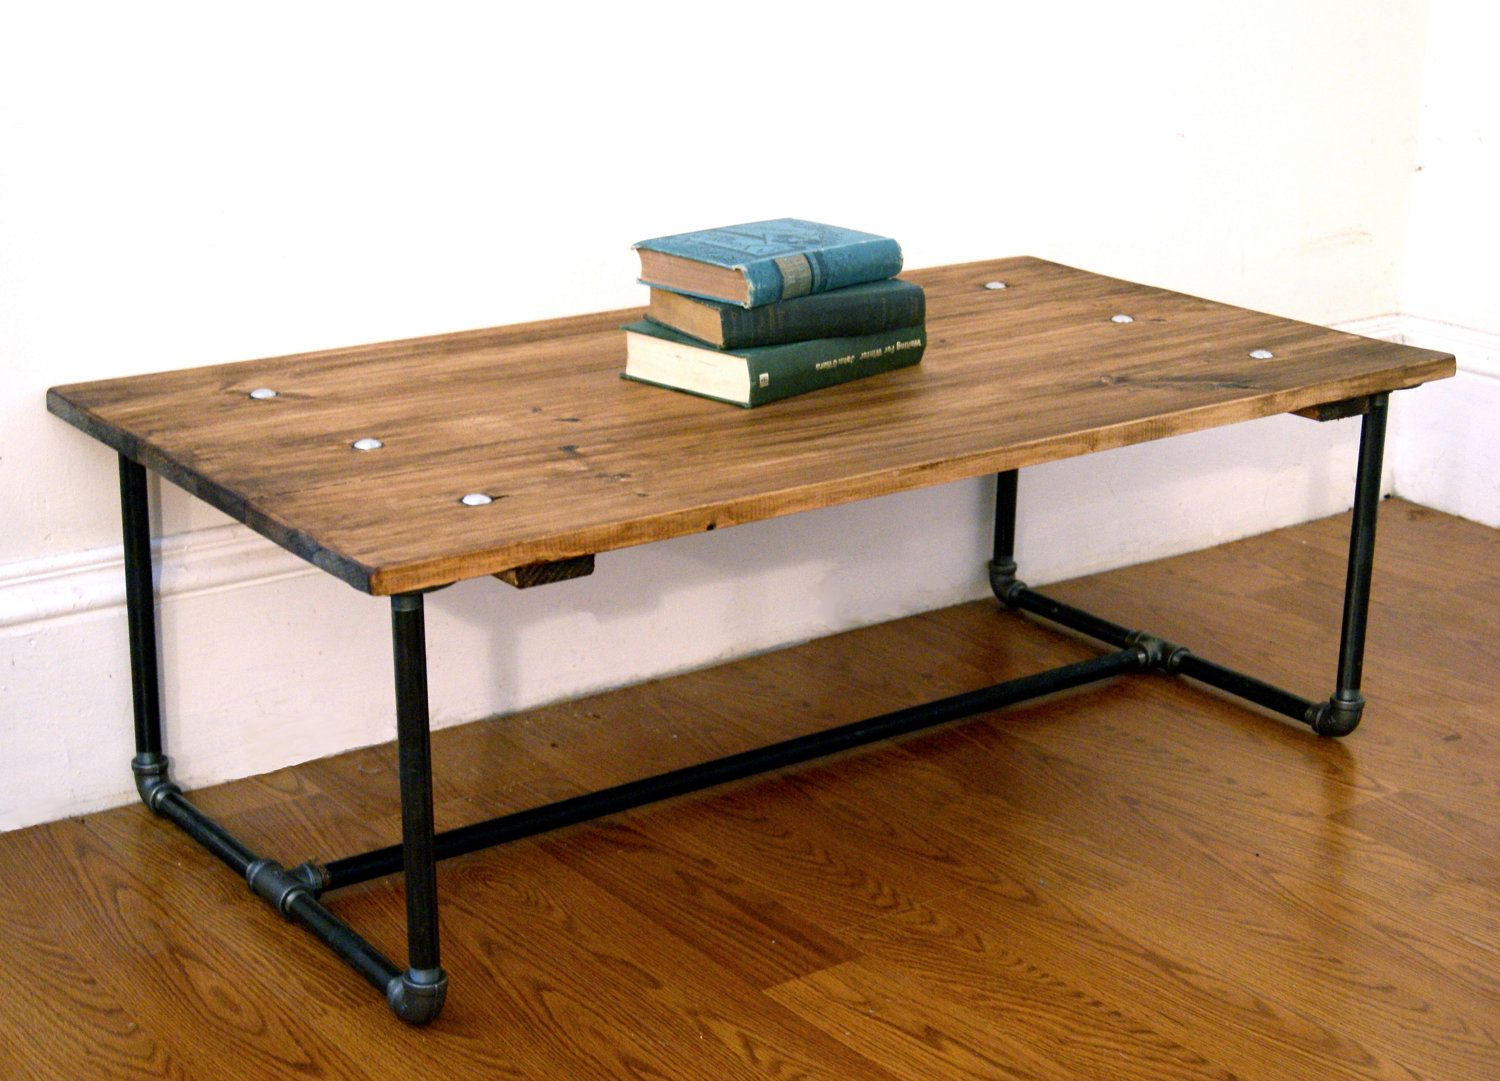 Pin By Marshall H On Industrial Diy In 2021 Industrial Style Coffee Table Coffee Table Furniture Fix [ 1081 x 1500 Pixel ]